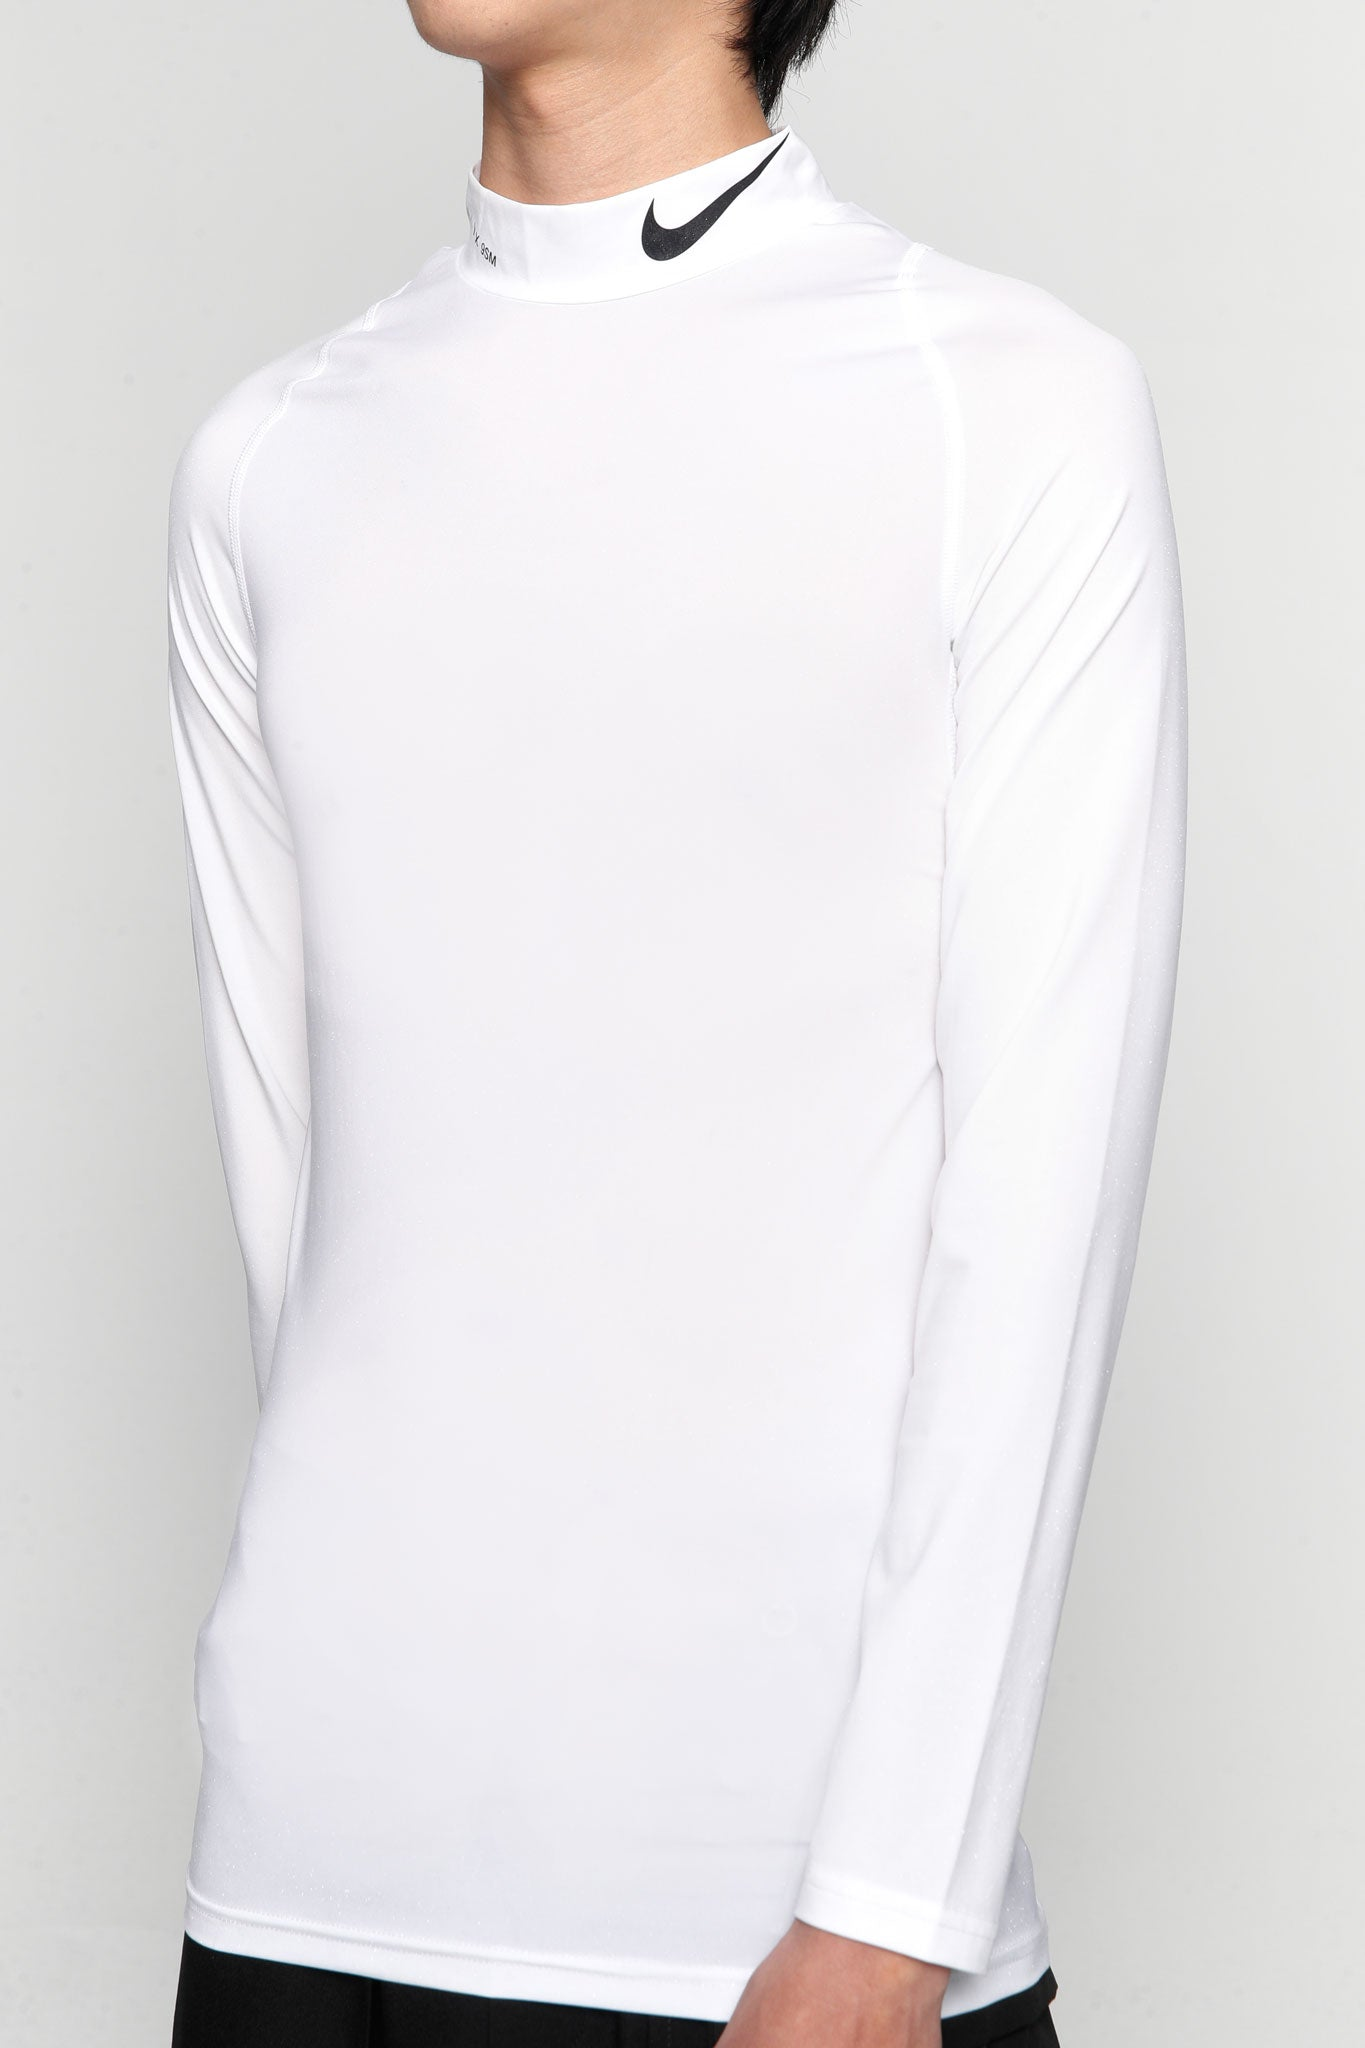 Nike Collab Training L/s Tee Glitter White